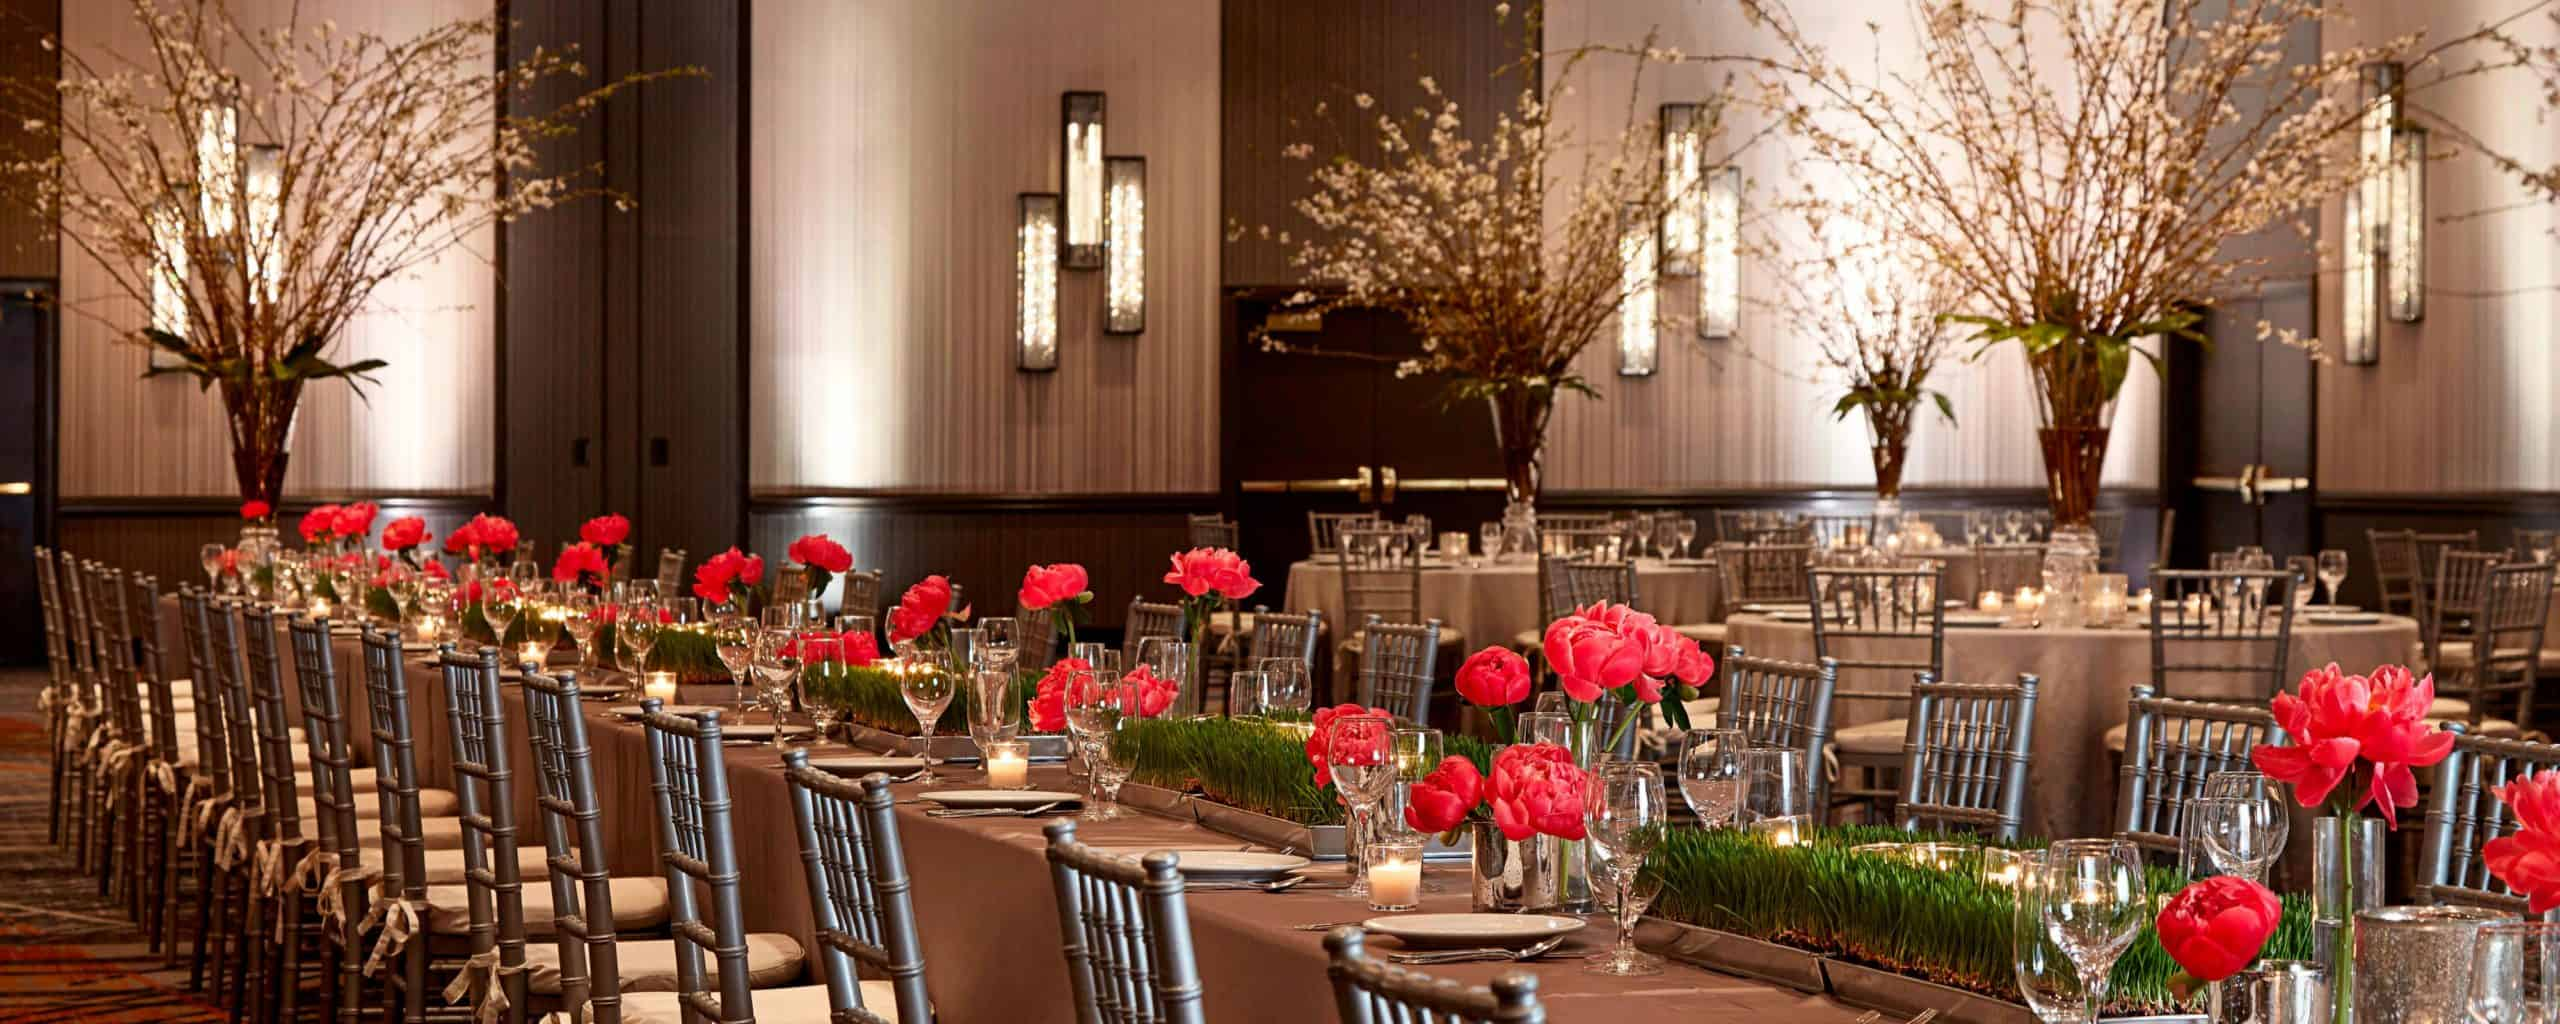 Decorative Lighting Case Study: Brooklyn Bridge Marriott 8